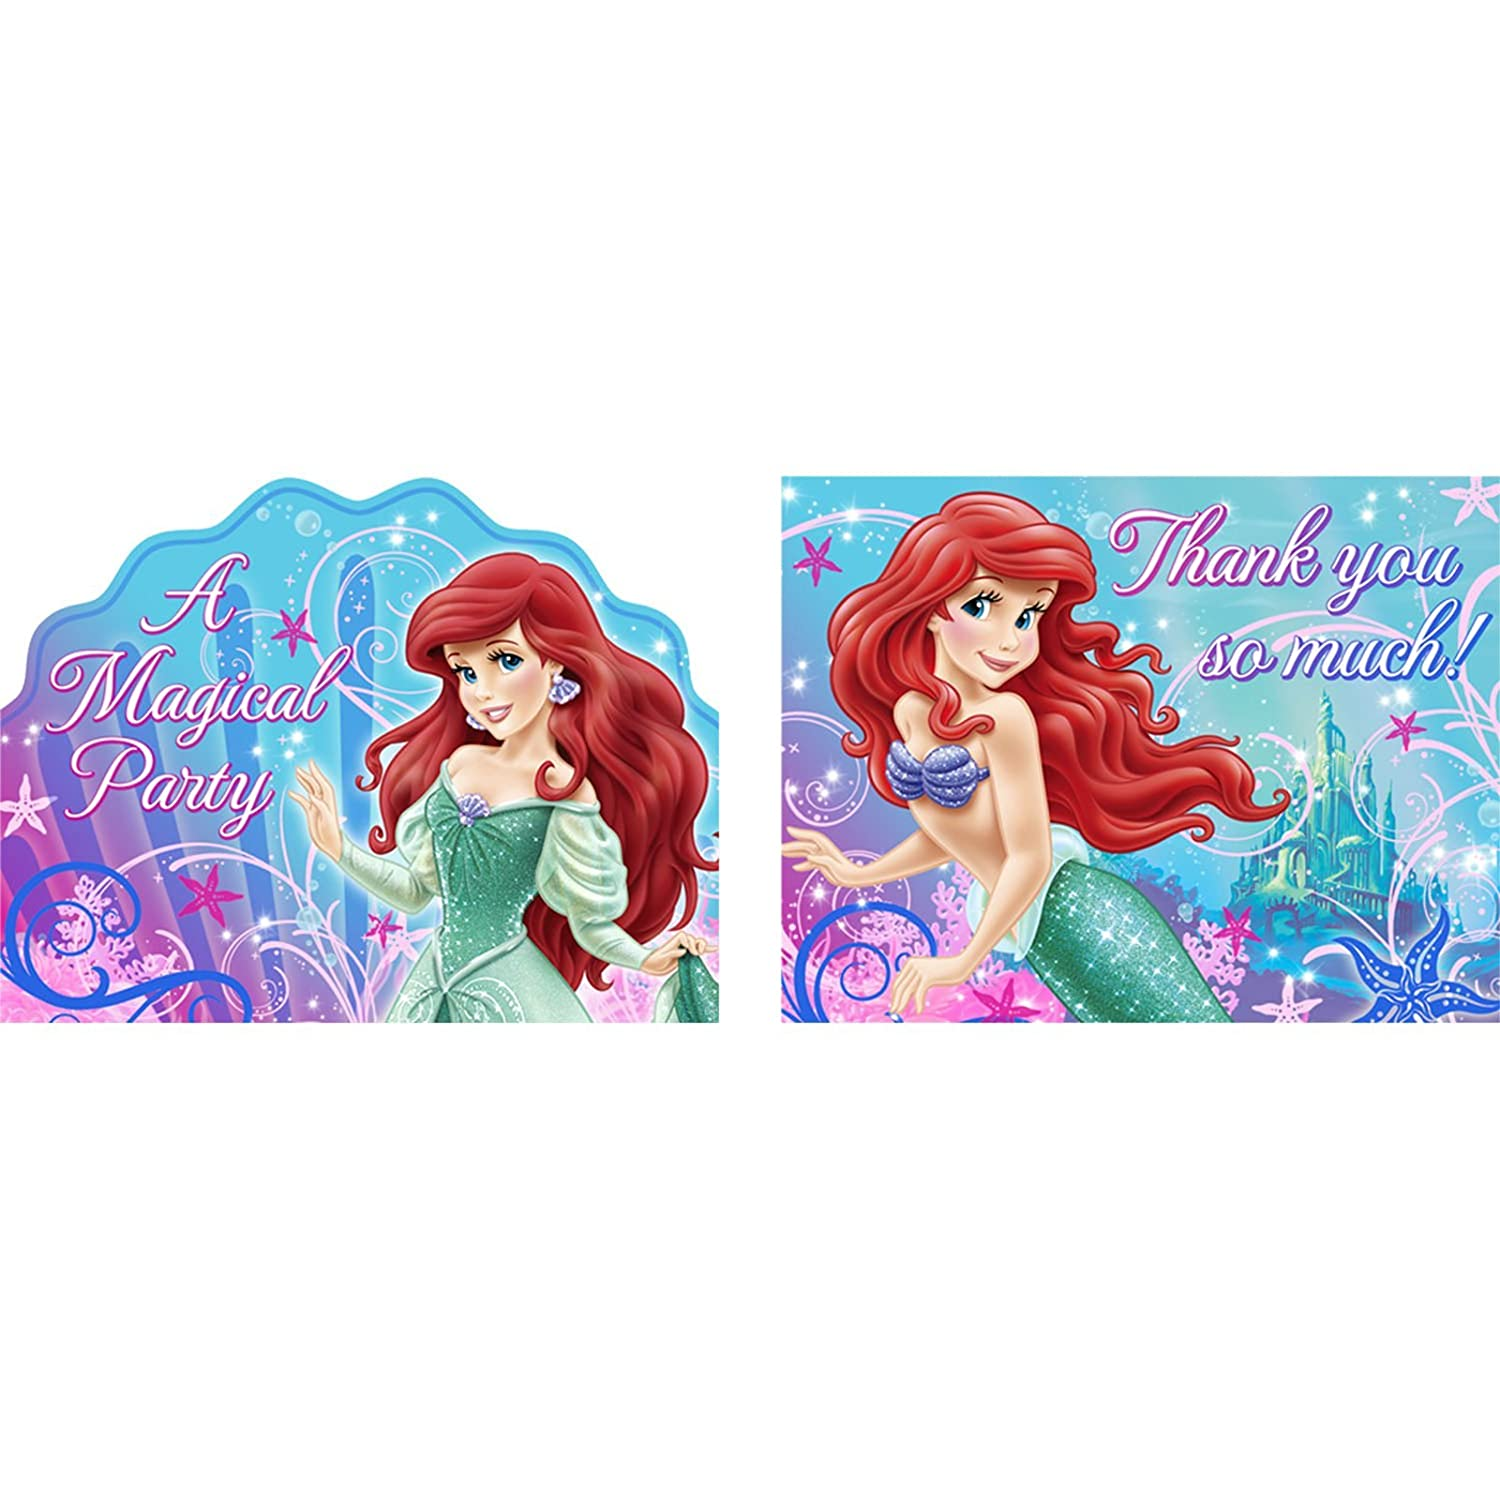 Amazoncom Little Mermaid Sparkle Party Invitations Thank You